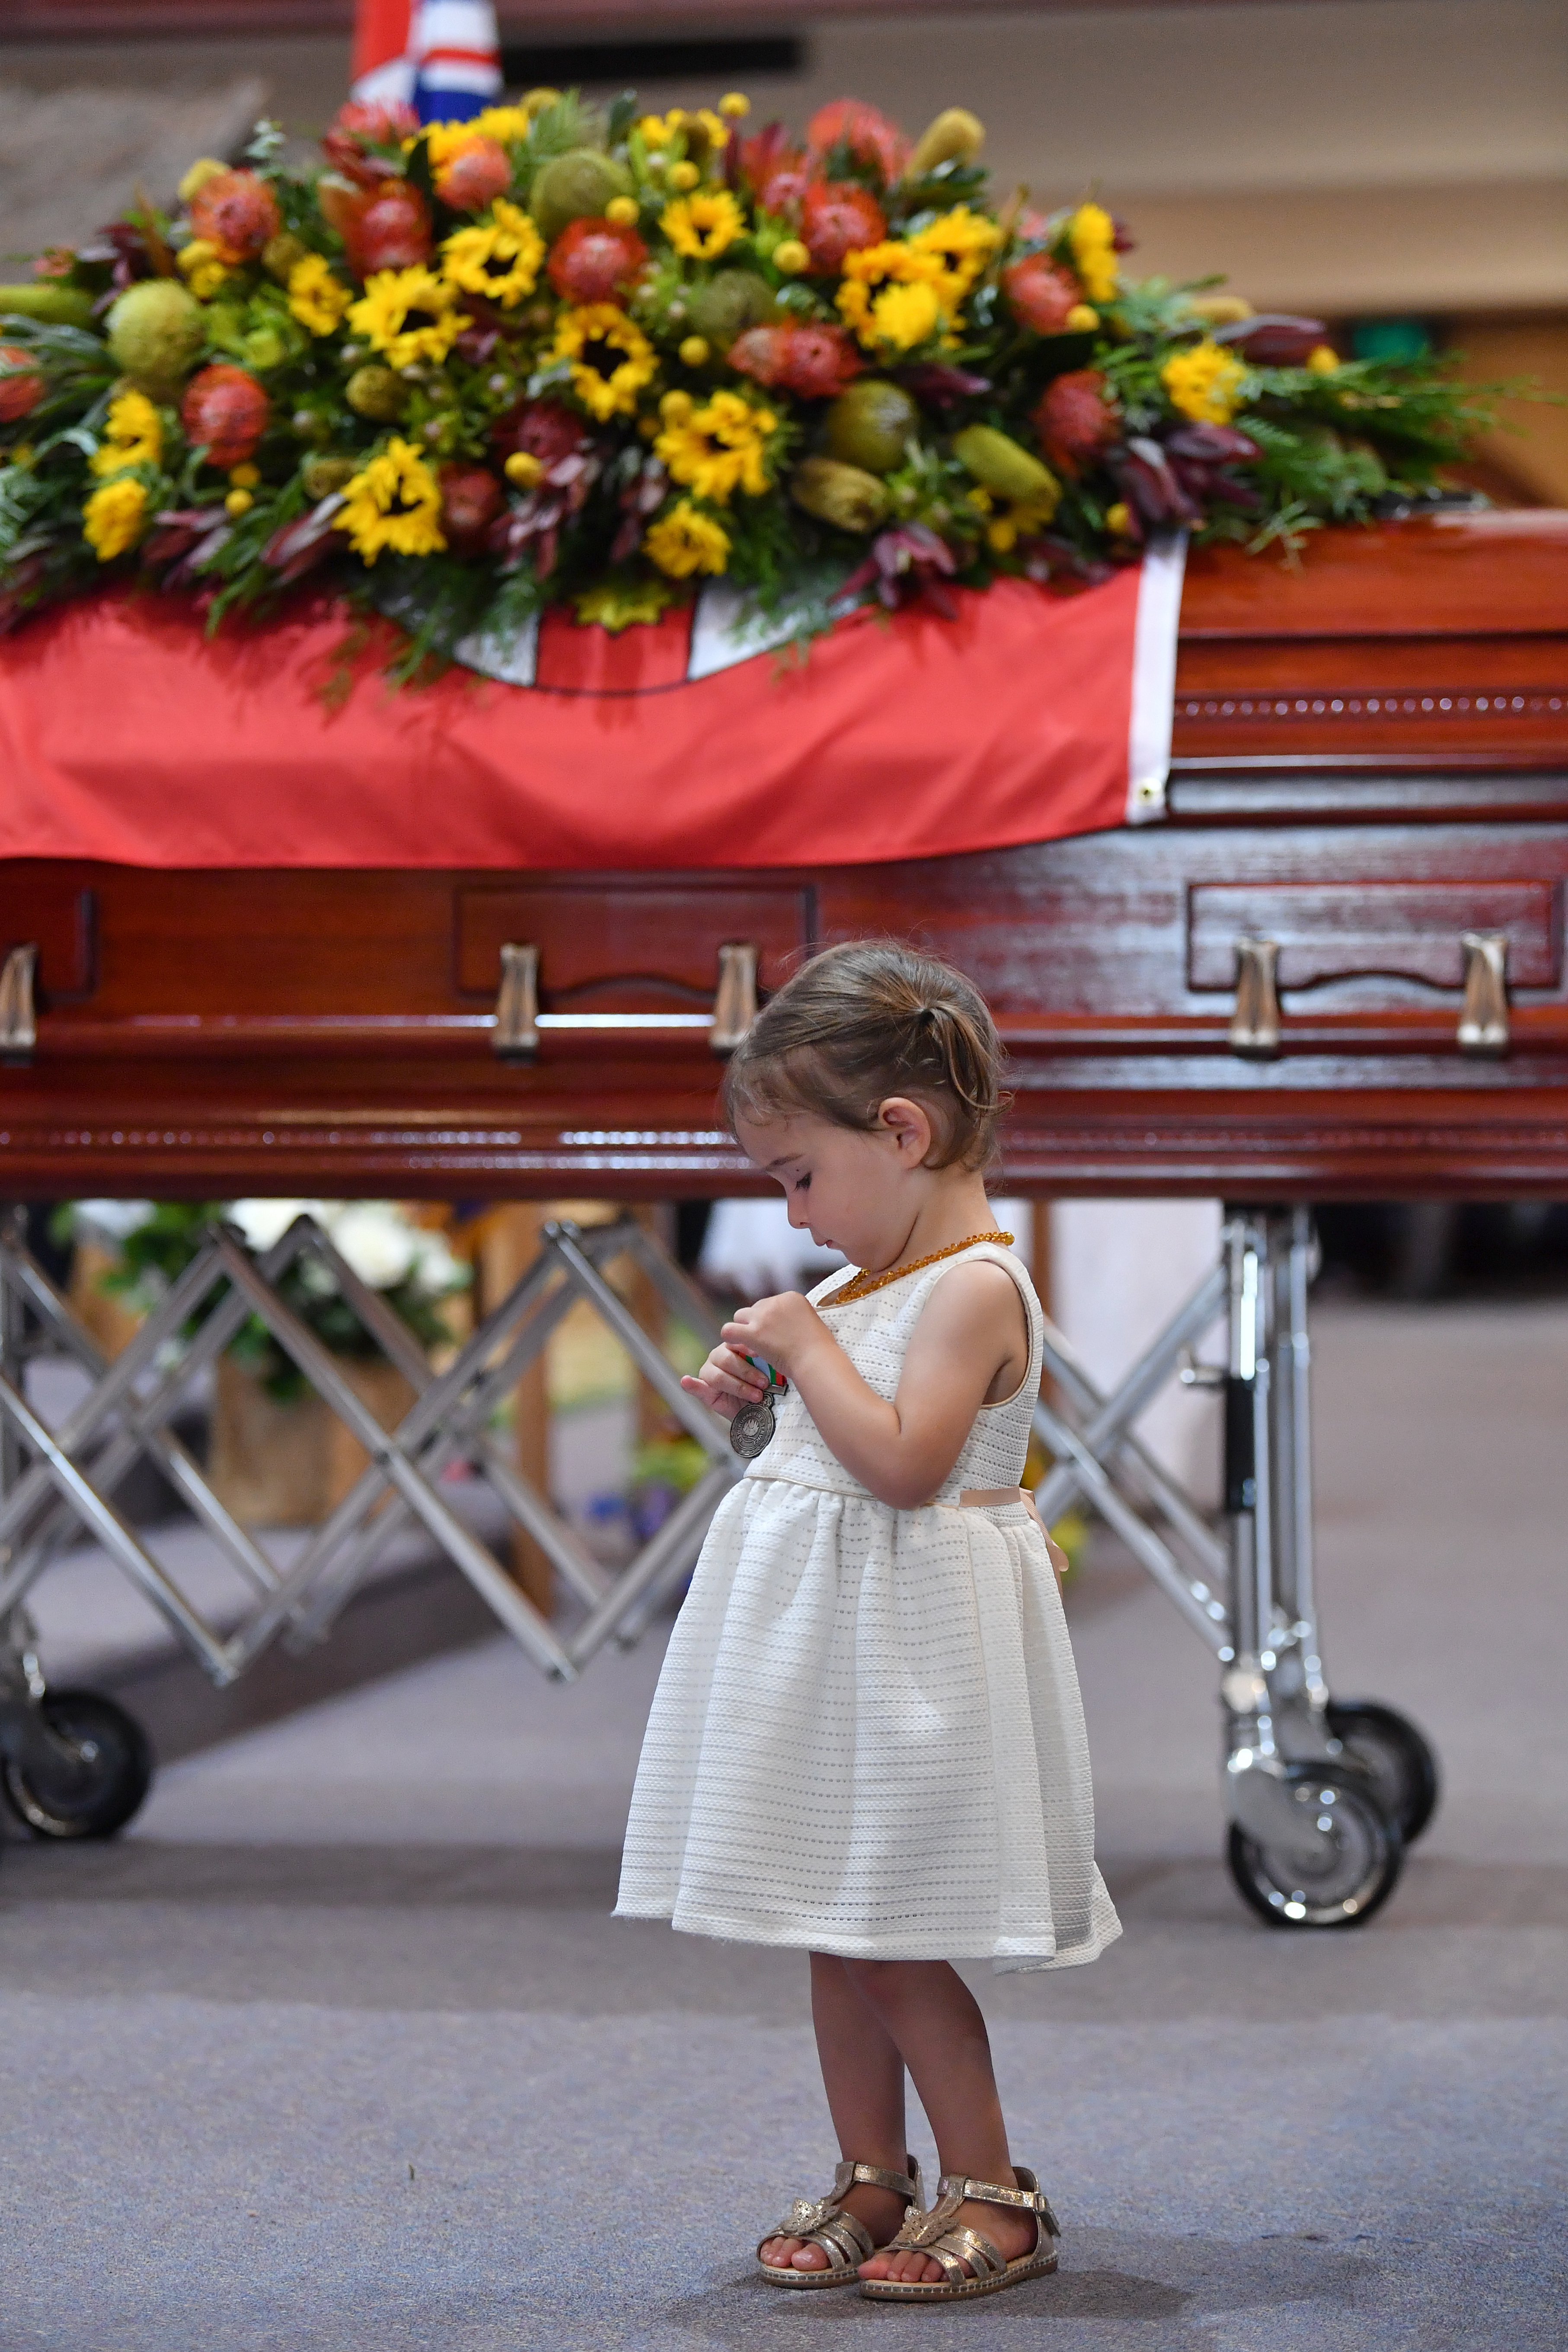 HORSLEY PARK, SYDNEY - JANUARY 07: Charlotte O'Dwyer, the young daughter of Rural Fire Service volunteer Andrew O'Dwyer stands in front of her fathers casket as she looks at the service medal presented to her by RFS Commissioner Shane Fitzsimmons during the funeral for NSW RFS volunteer Andrew O'Dwyer at Our Lady of Victories Catholic Church on January 7, 2020 in Horsley Park, Sydney. (Photo by Dean Lewins-Pool/Getty Images)